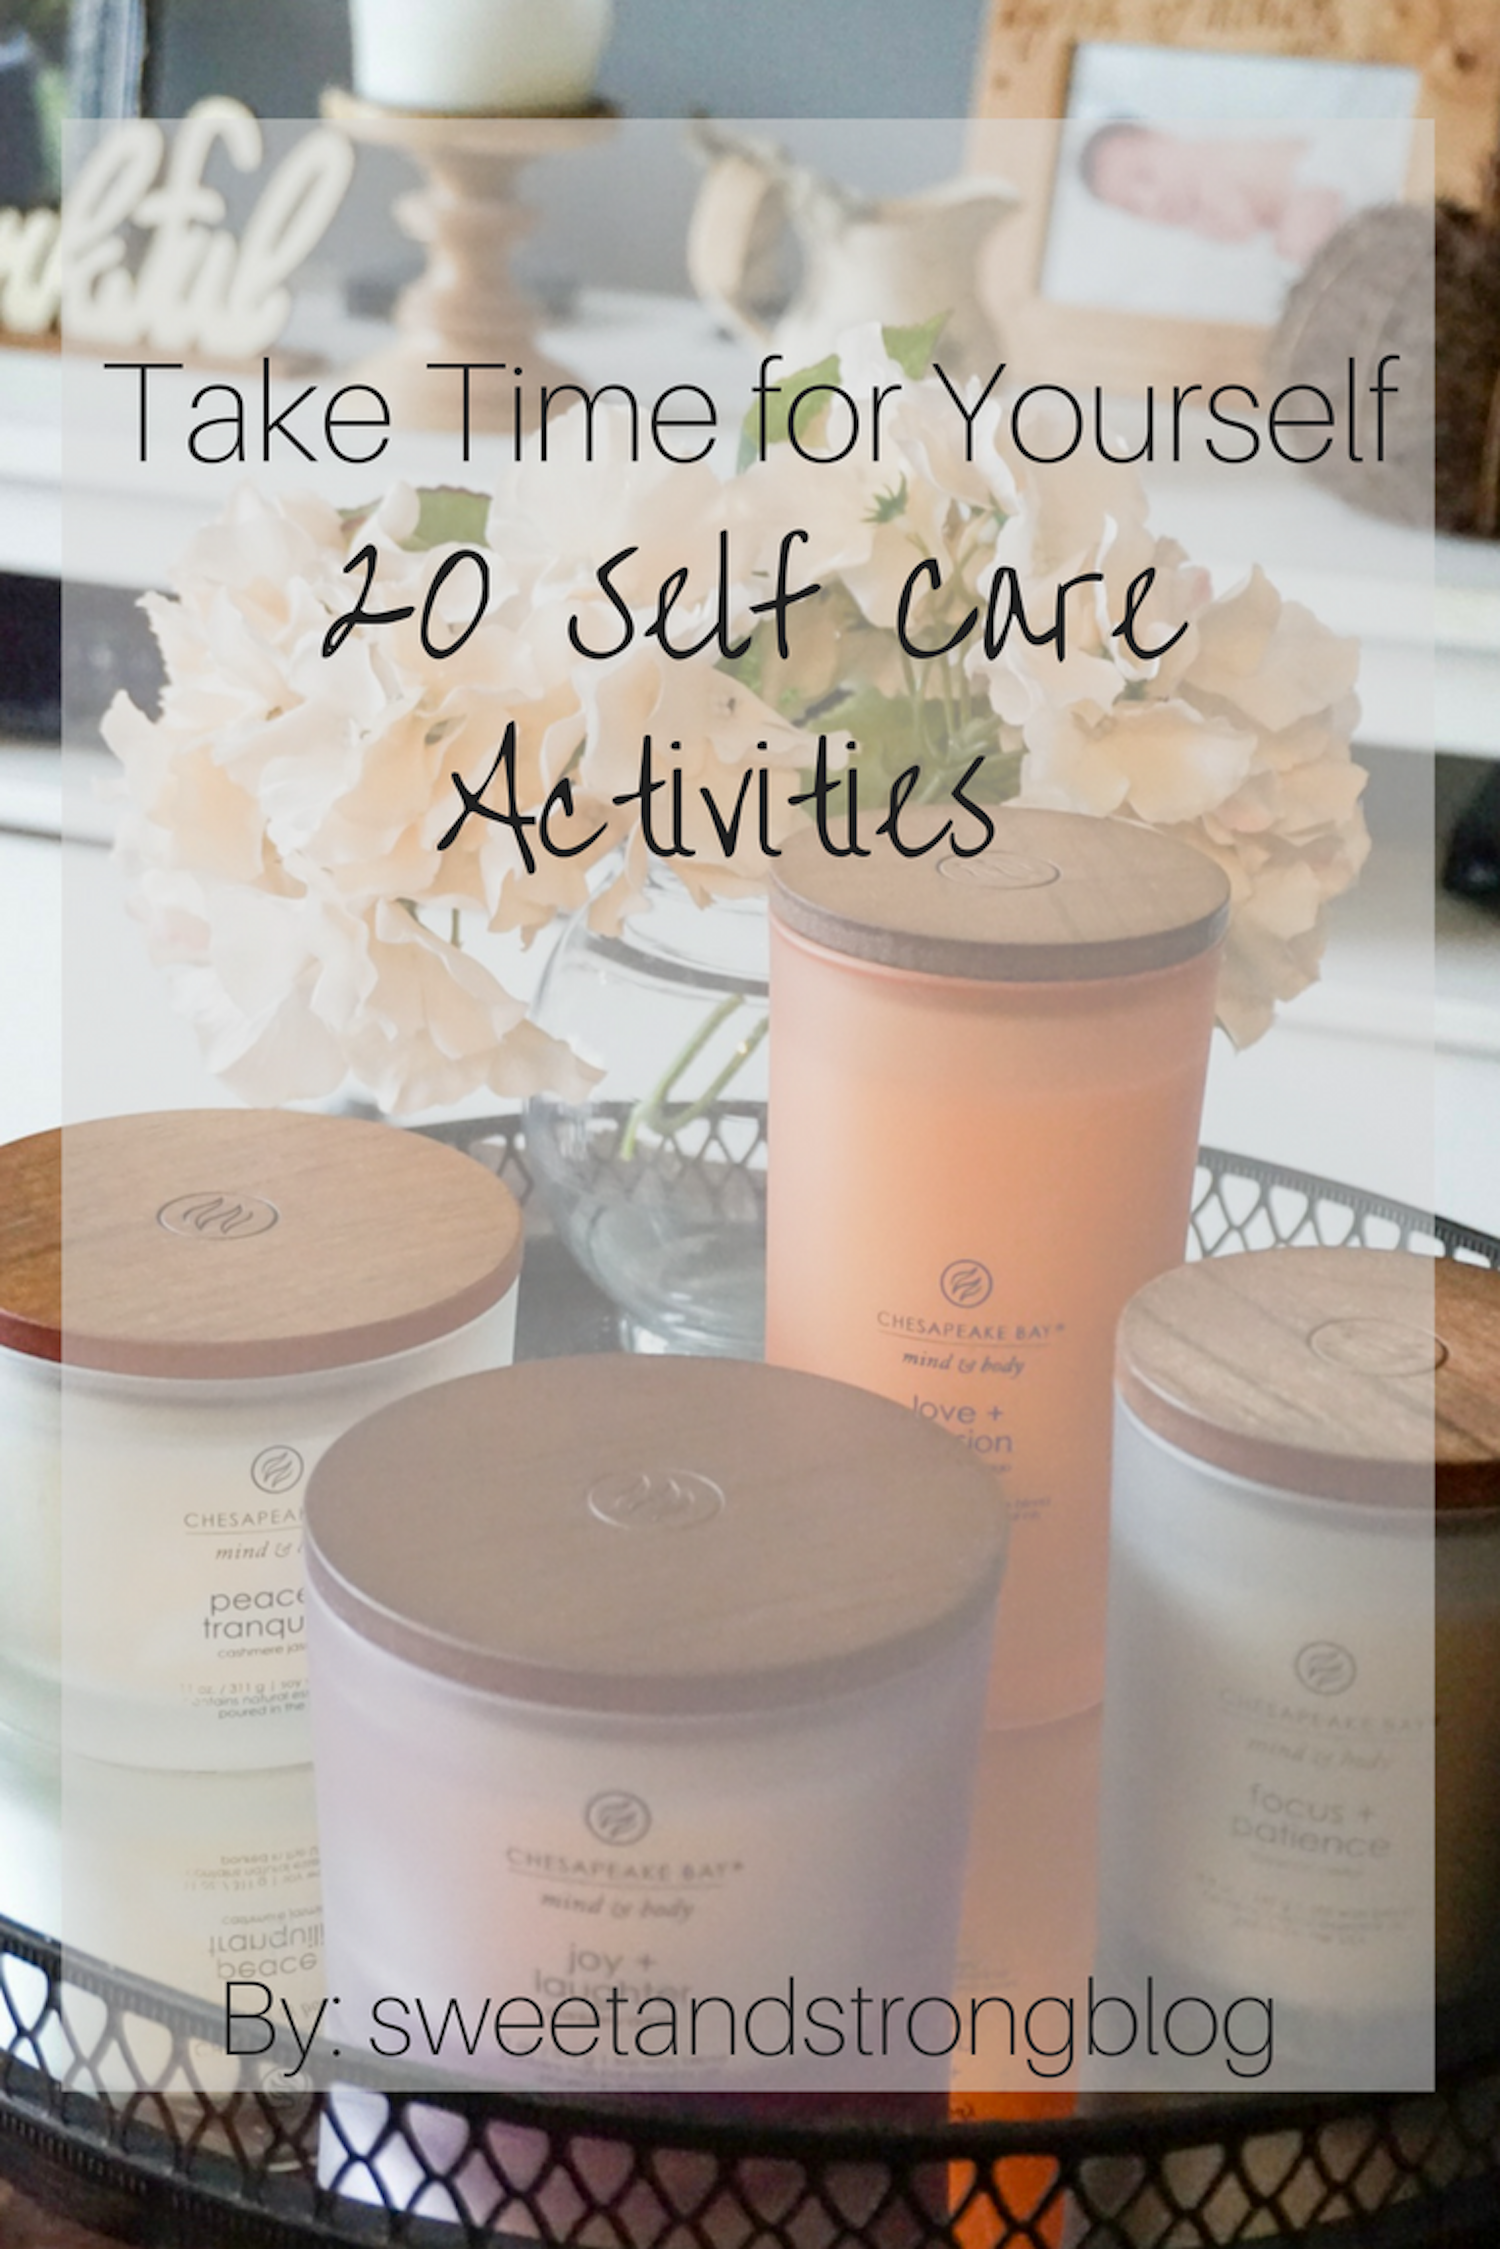 Take Time for Yourself, 20 Self Care Activities